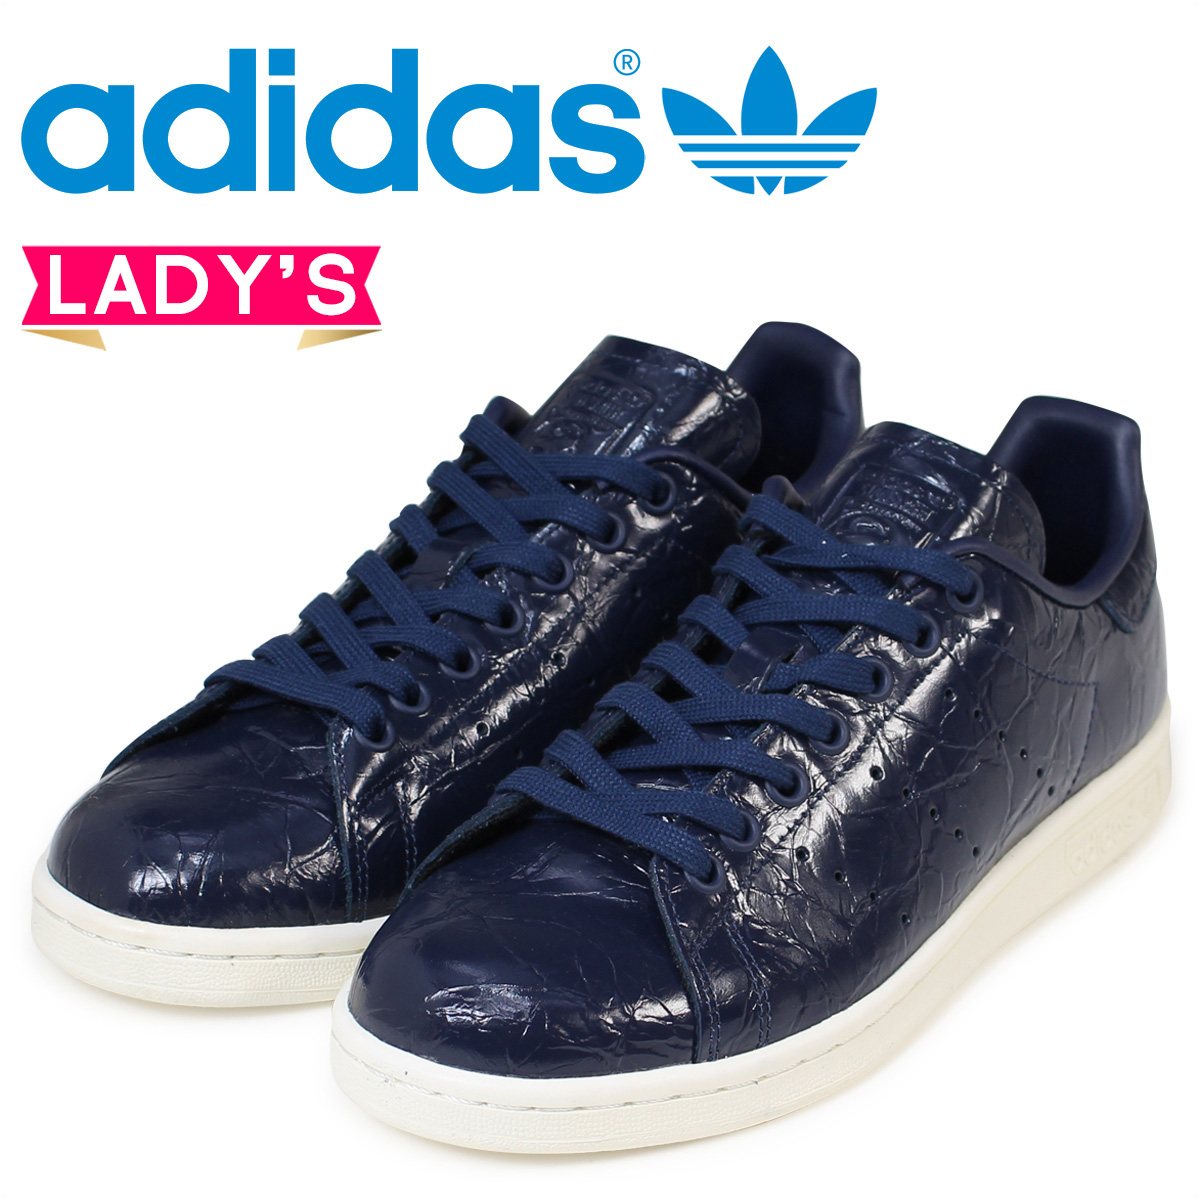 adidas Originals Stan Smith Lady's sneakers Adidas originals STAN SMITH W BB5163 shoes navy [171]